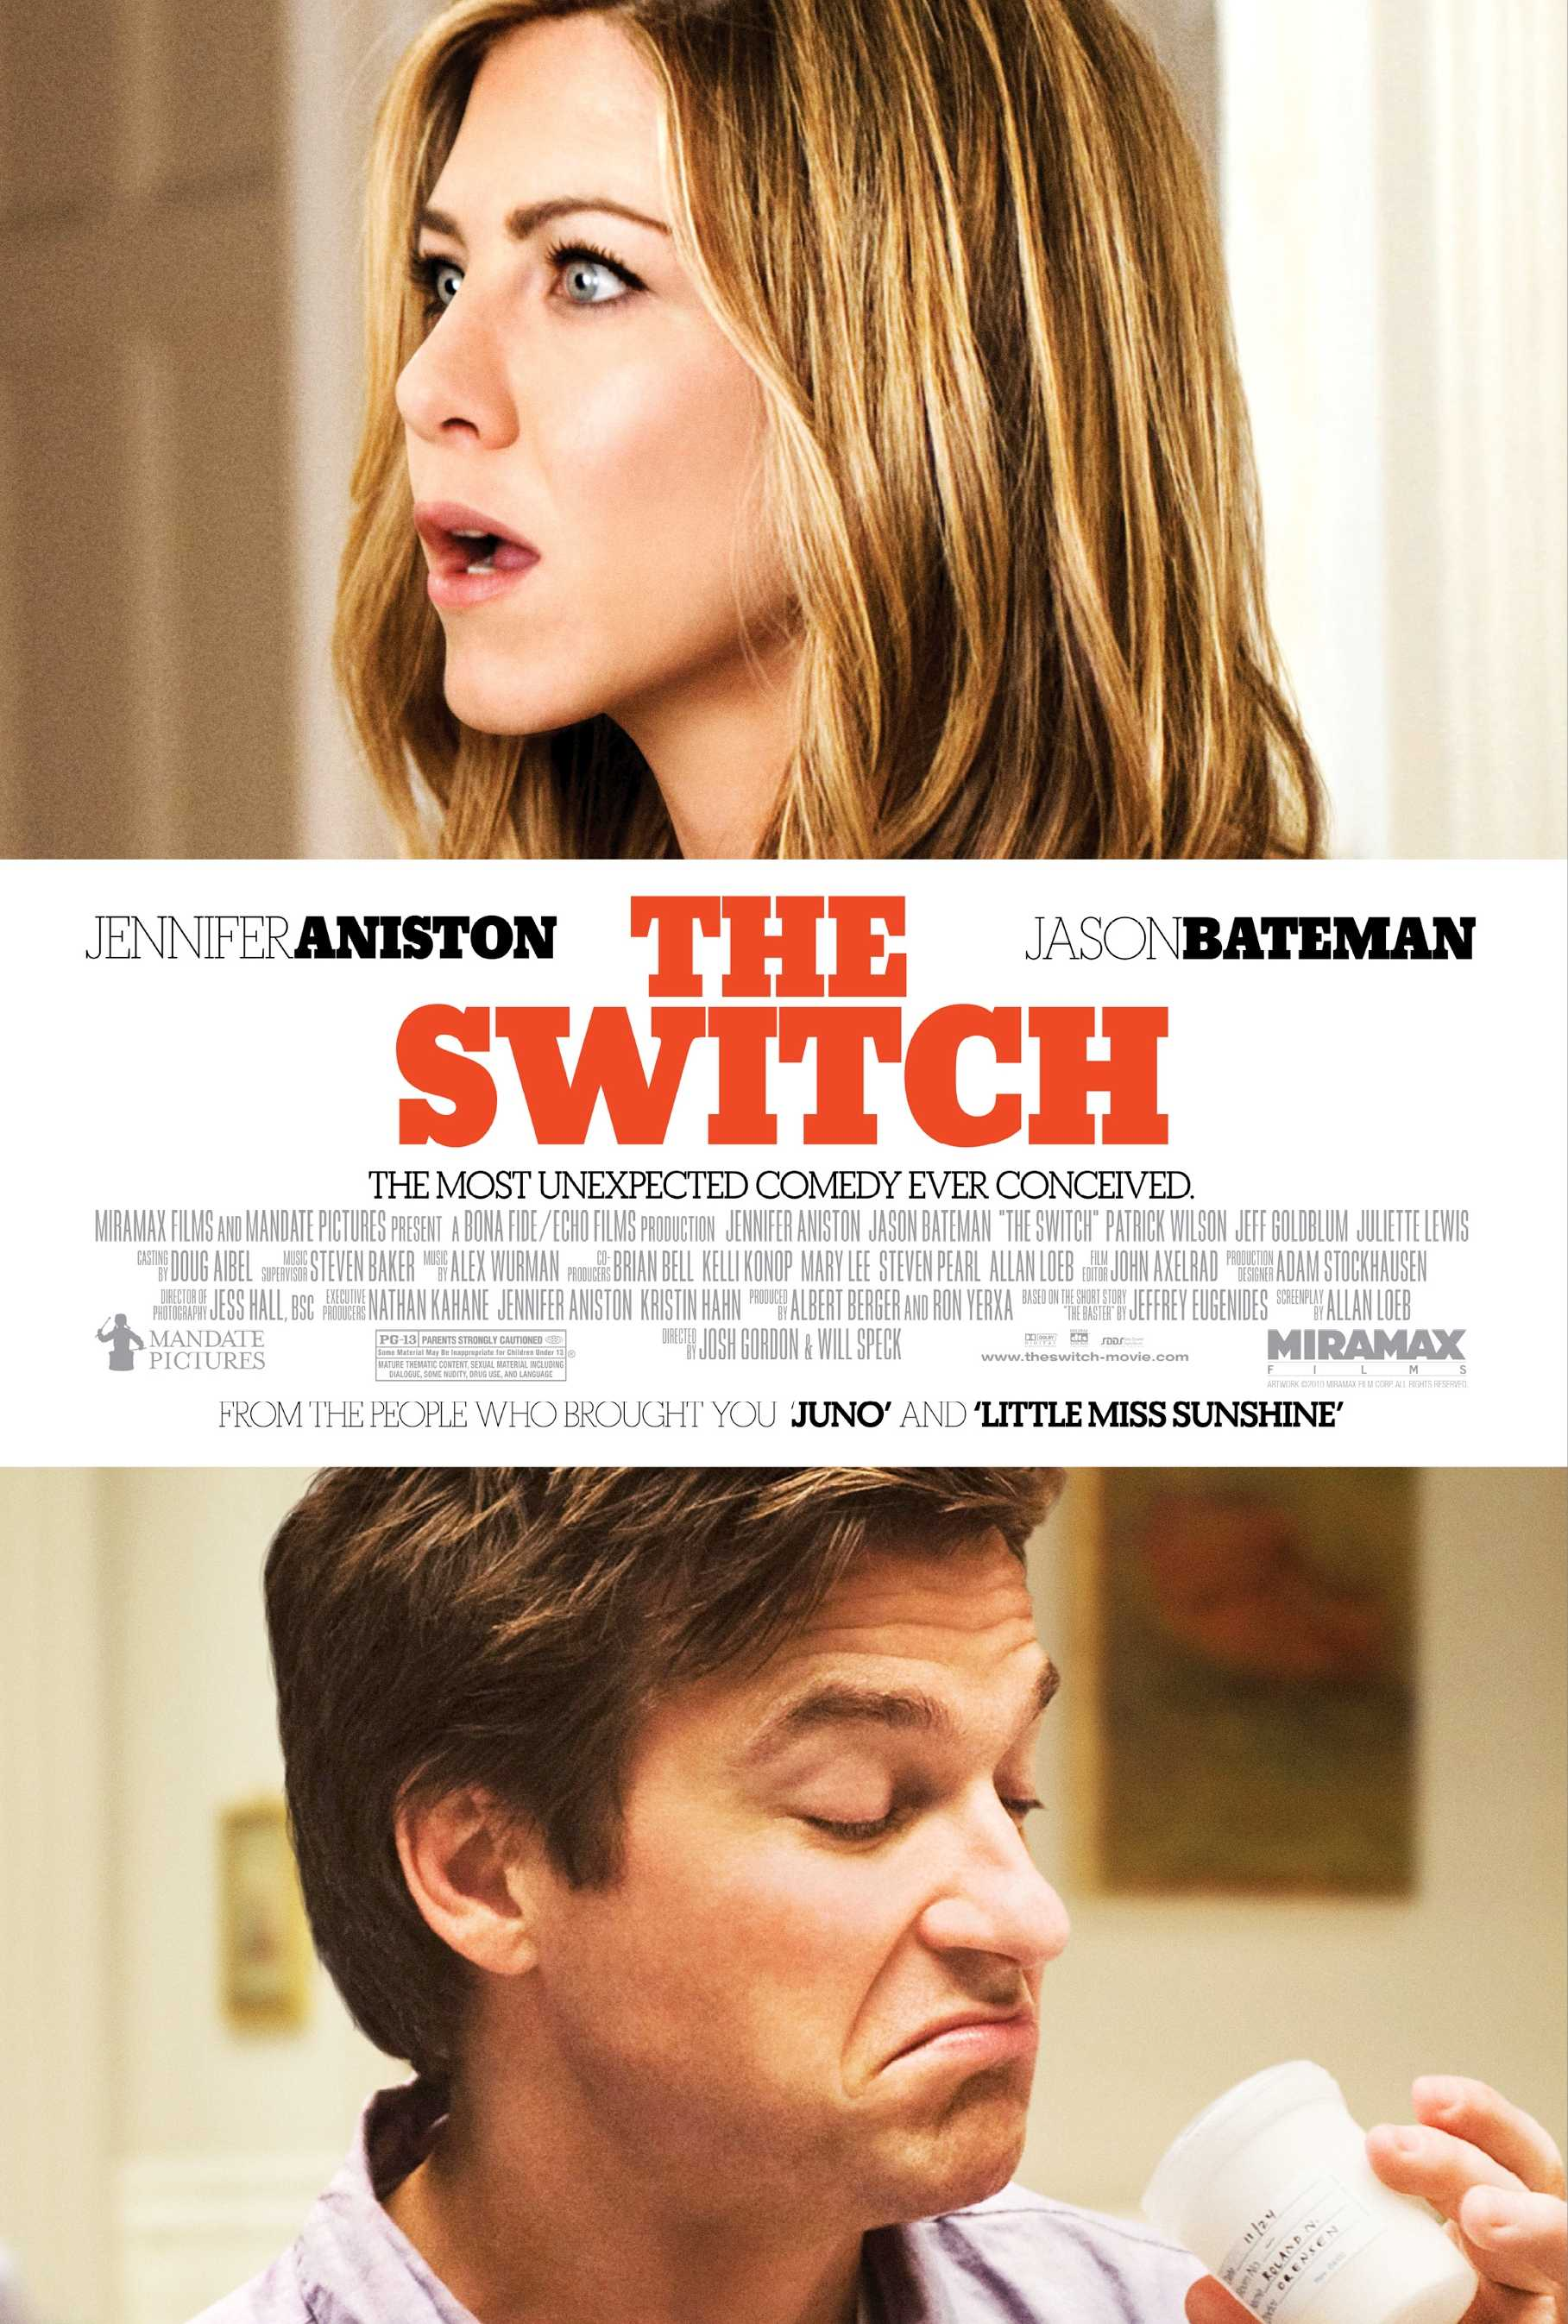 Movie Poster - The Switch